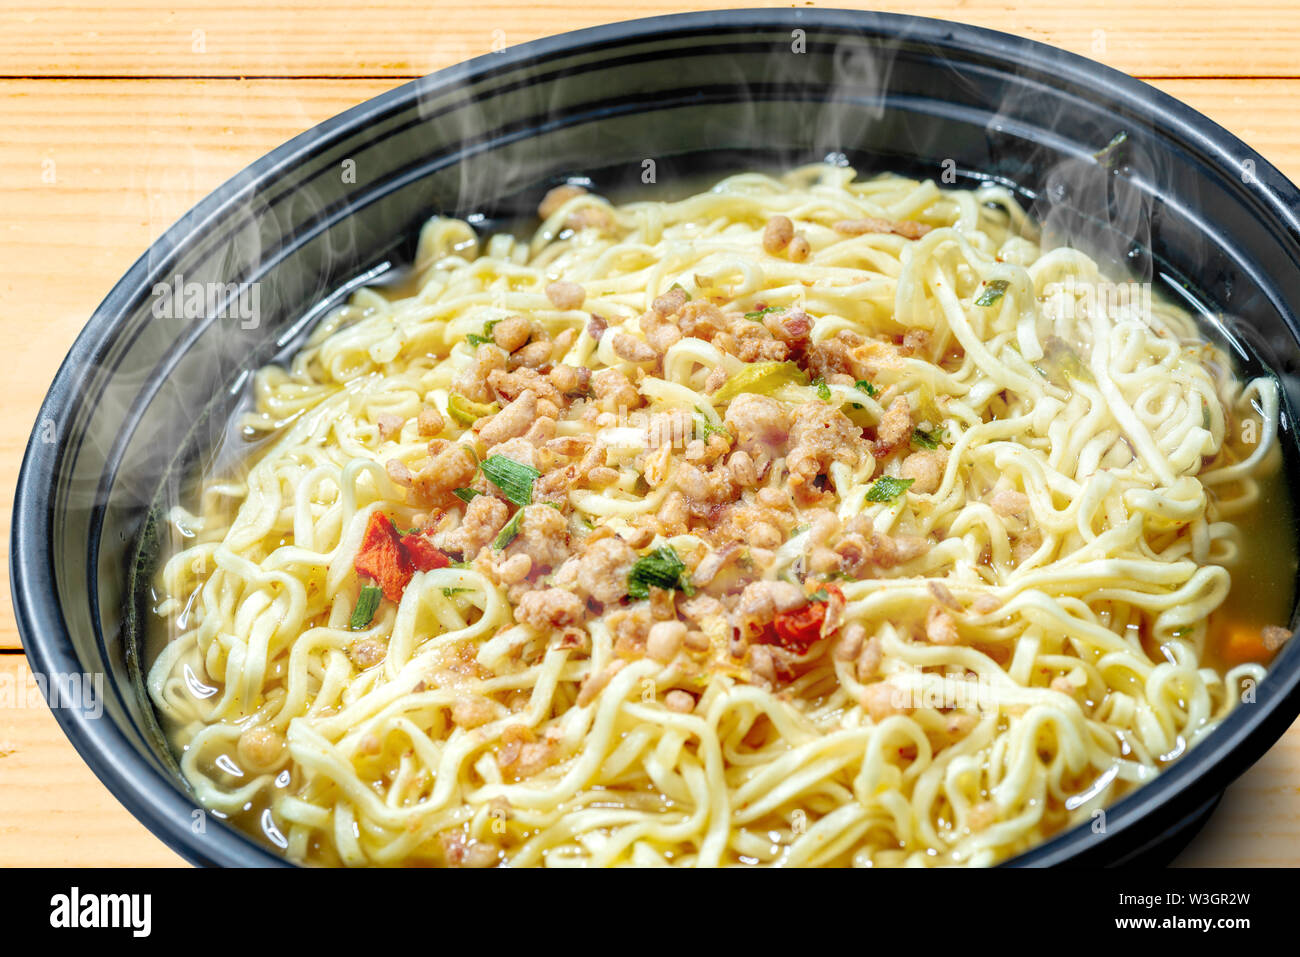 Close up of noodles on the bowl on wooden table background - Stock Image